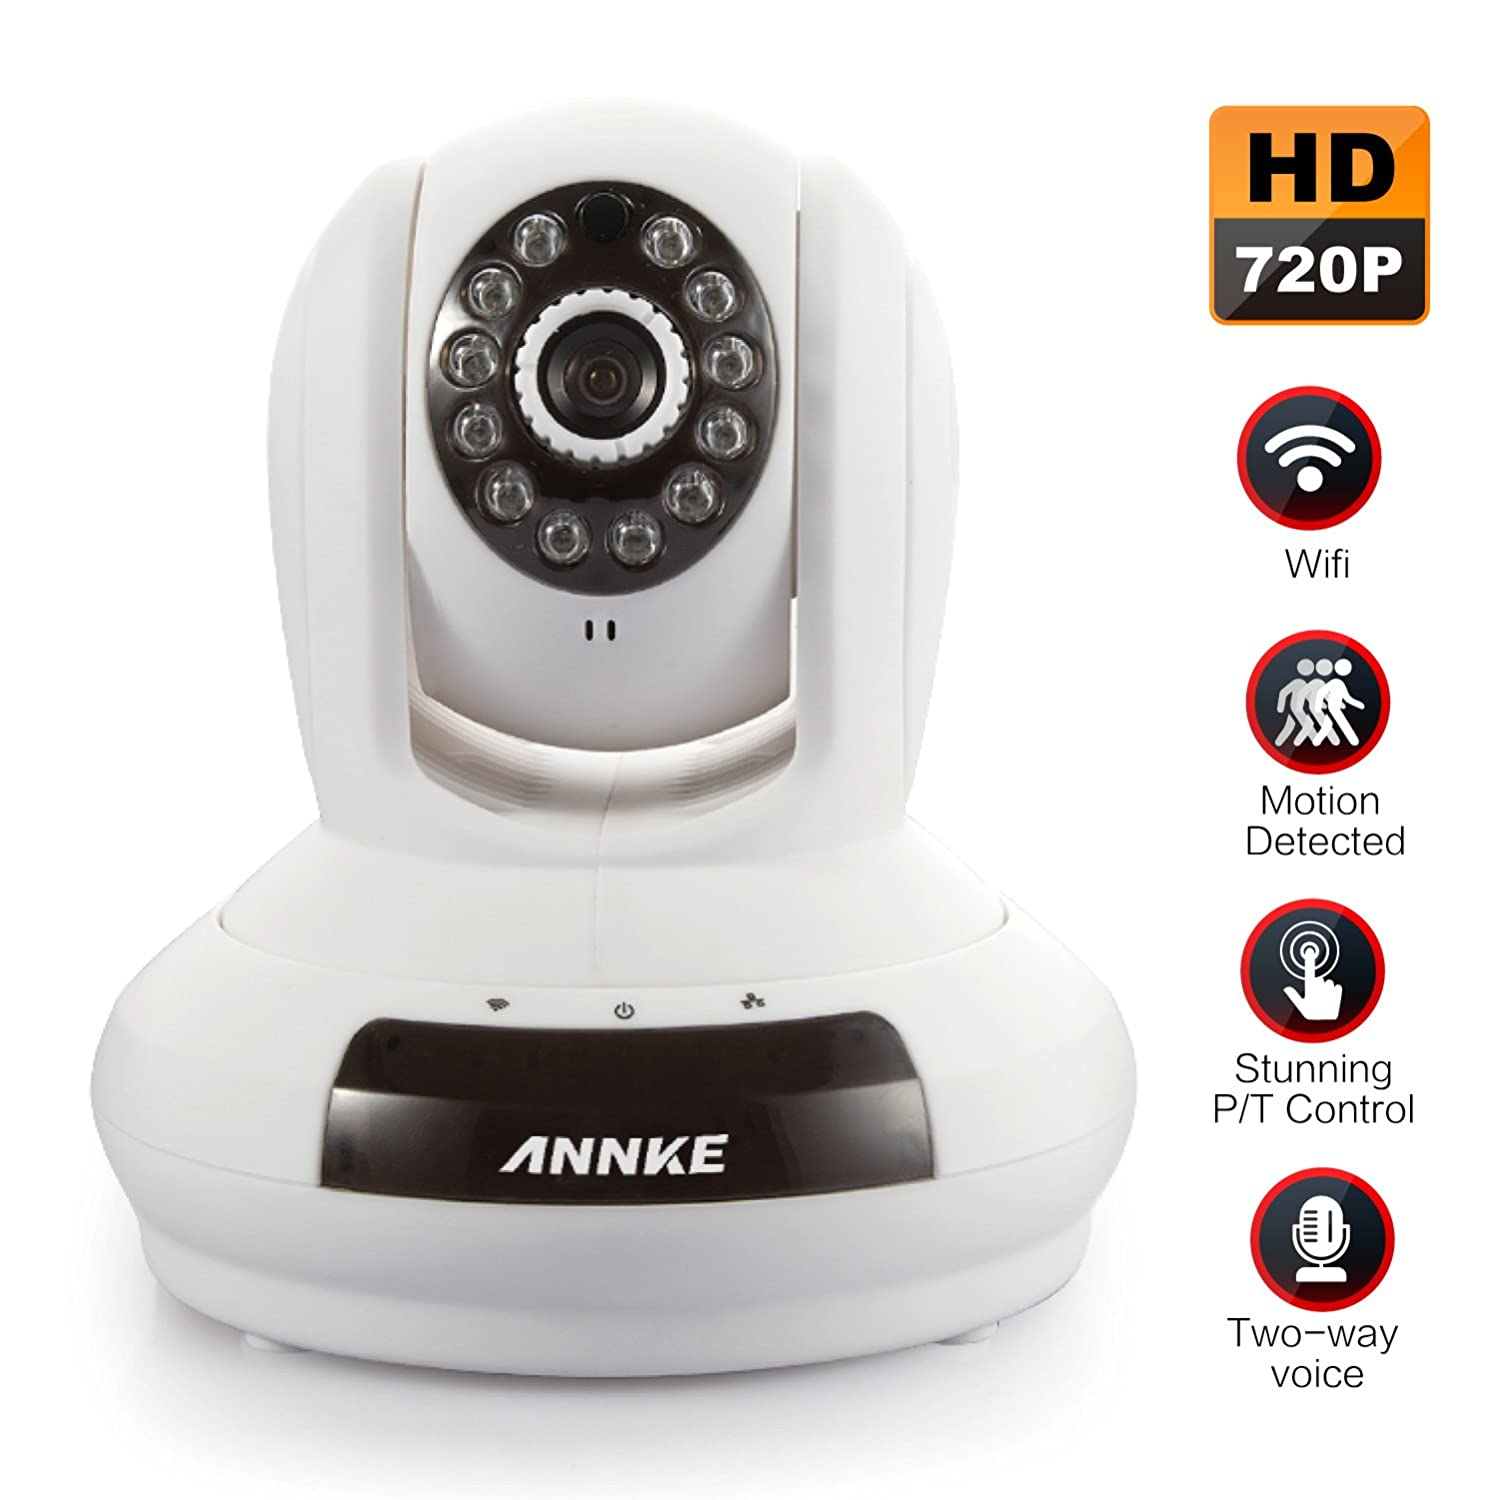 Annke Sparkle 1 Indoor Security Camera